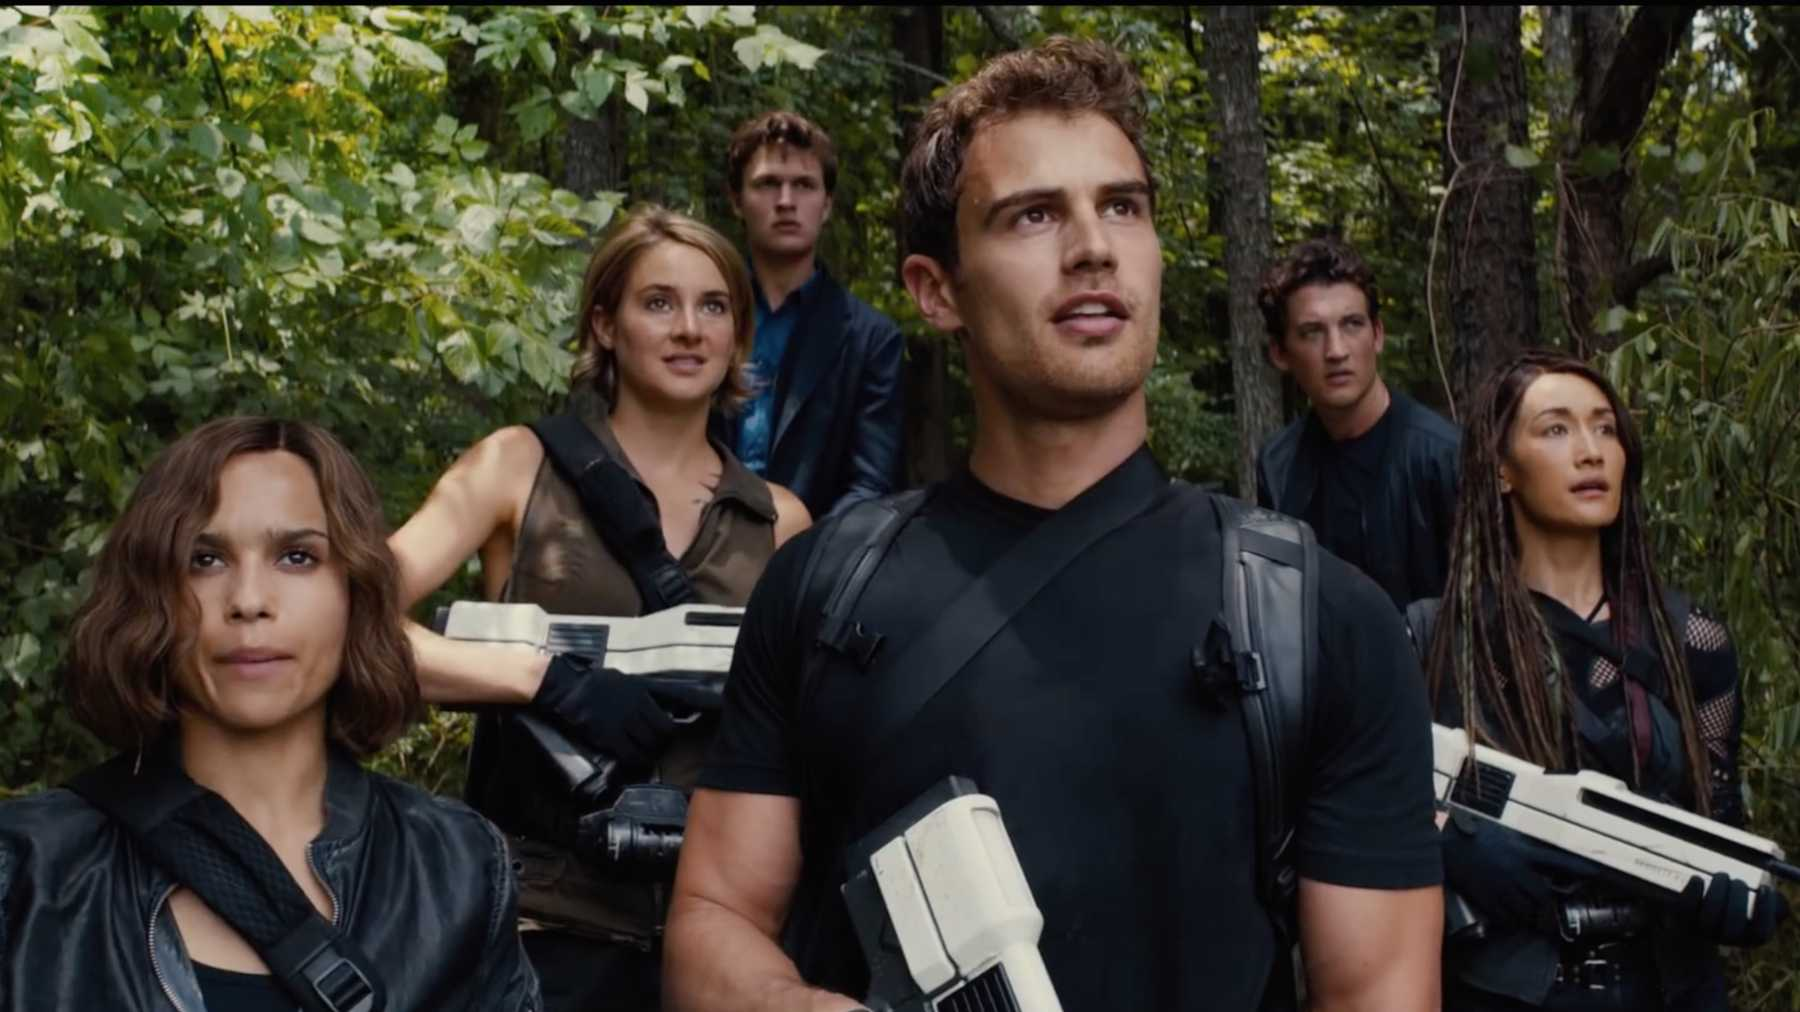 New trailer for The Divergent Series: Allegiant Online